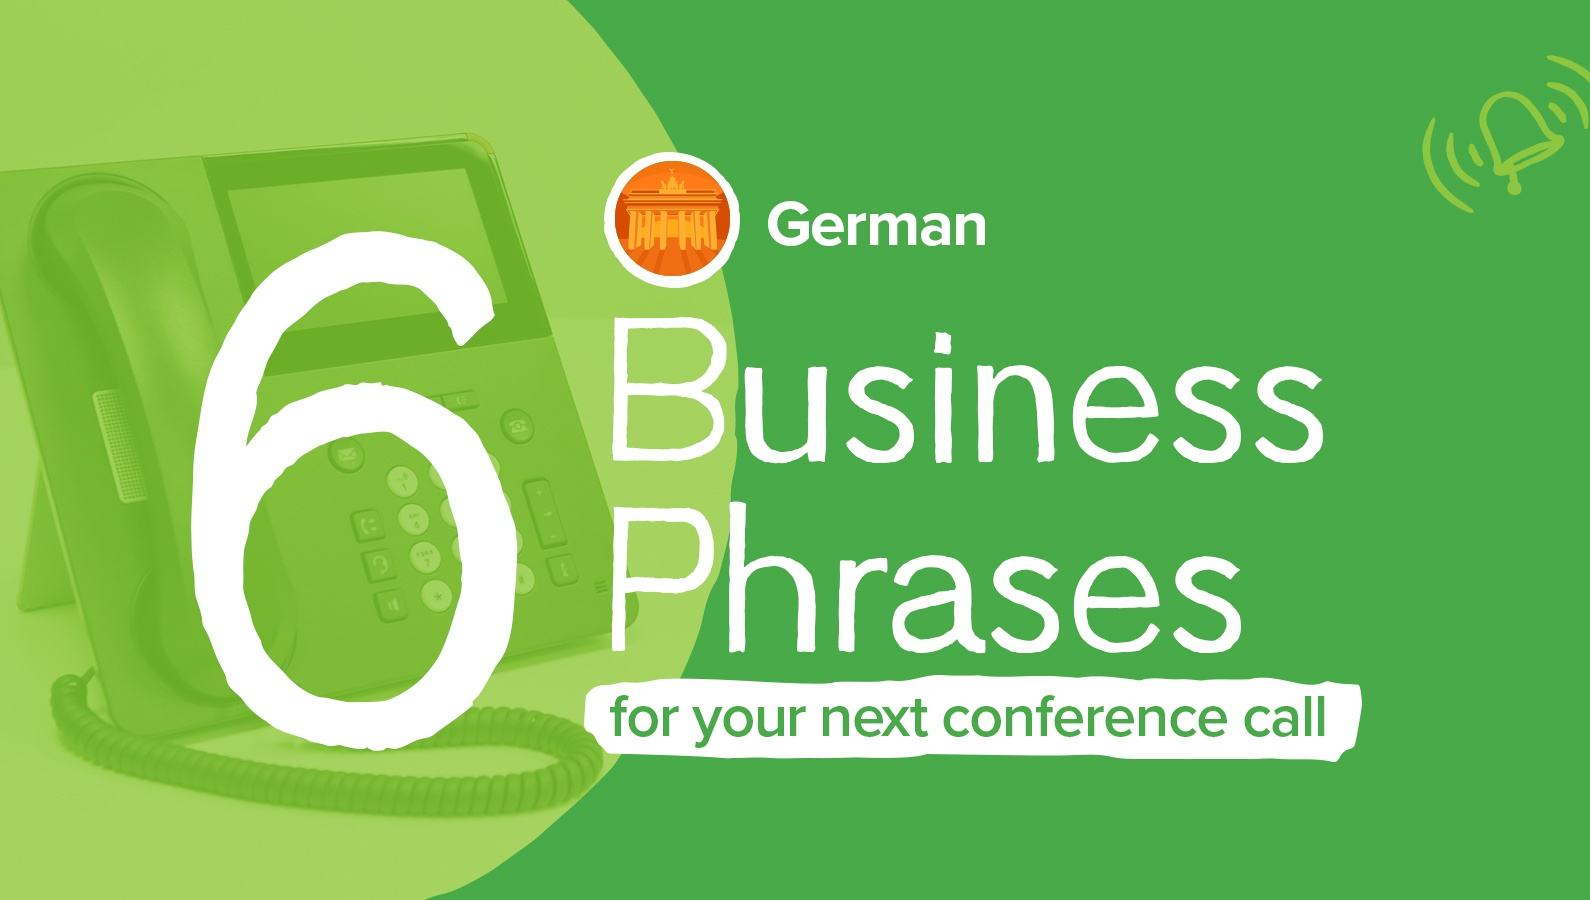 Six Practical German Business Phrases for Your Next Conference Call